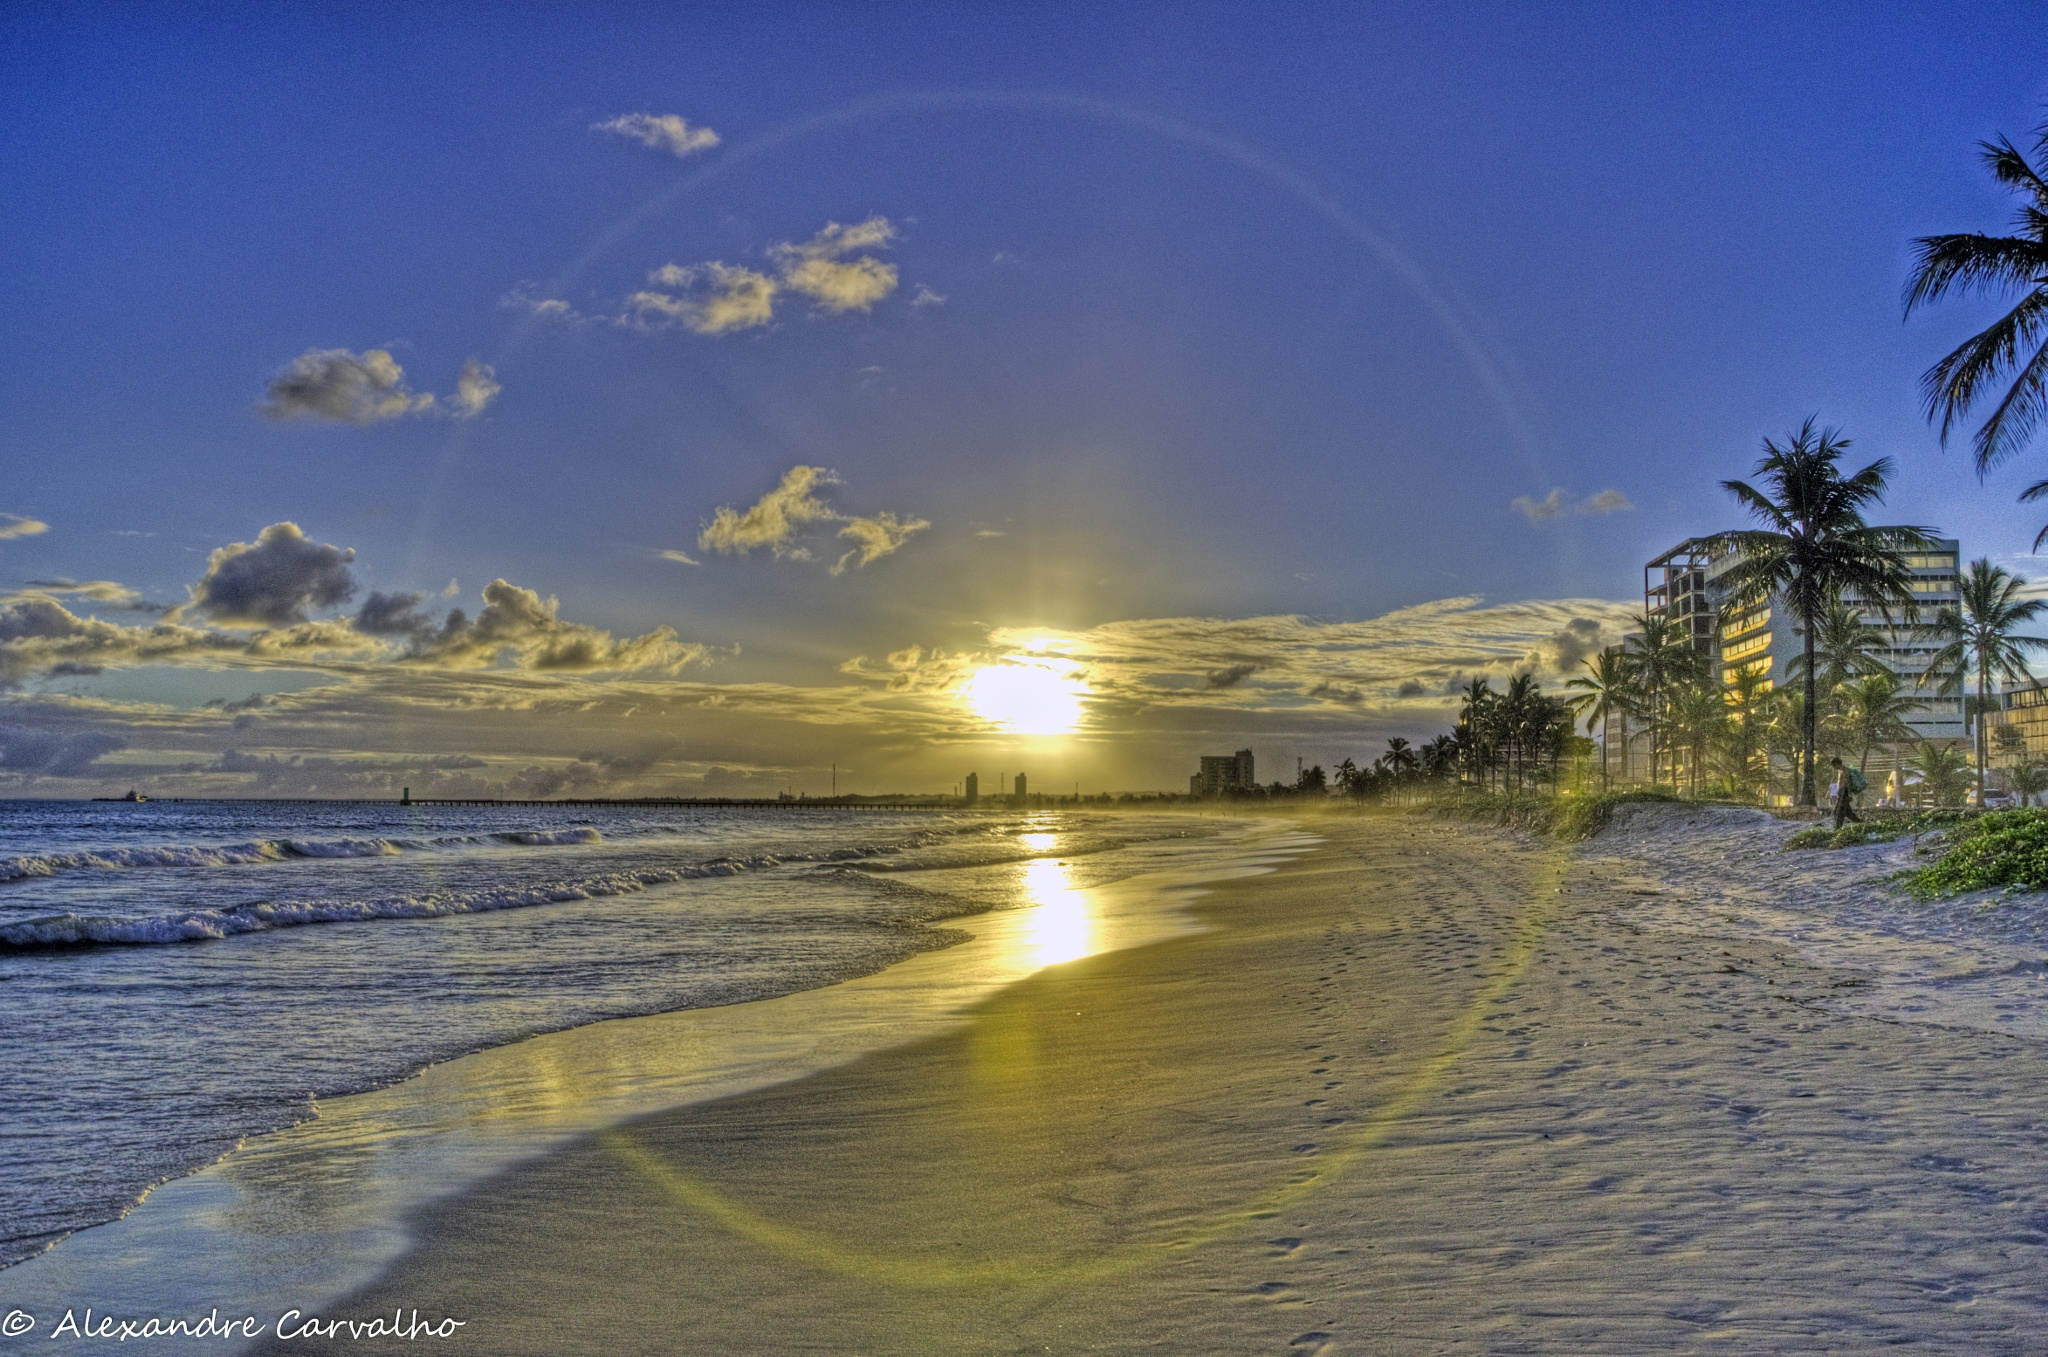 Sunset in the beach by Alexandre Carvalho